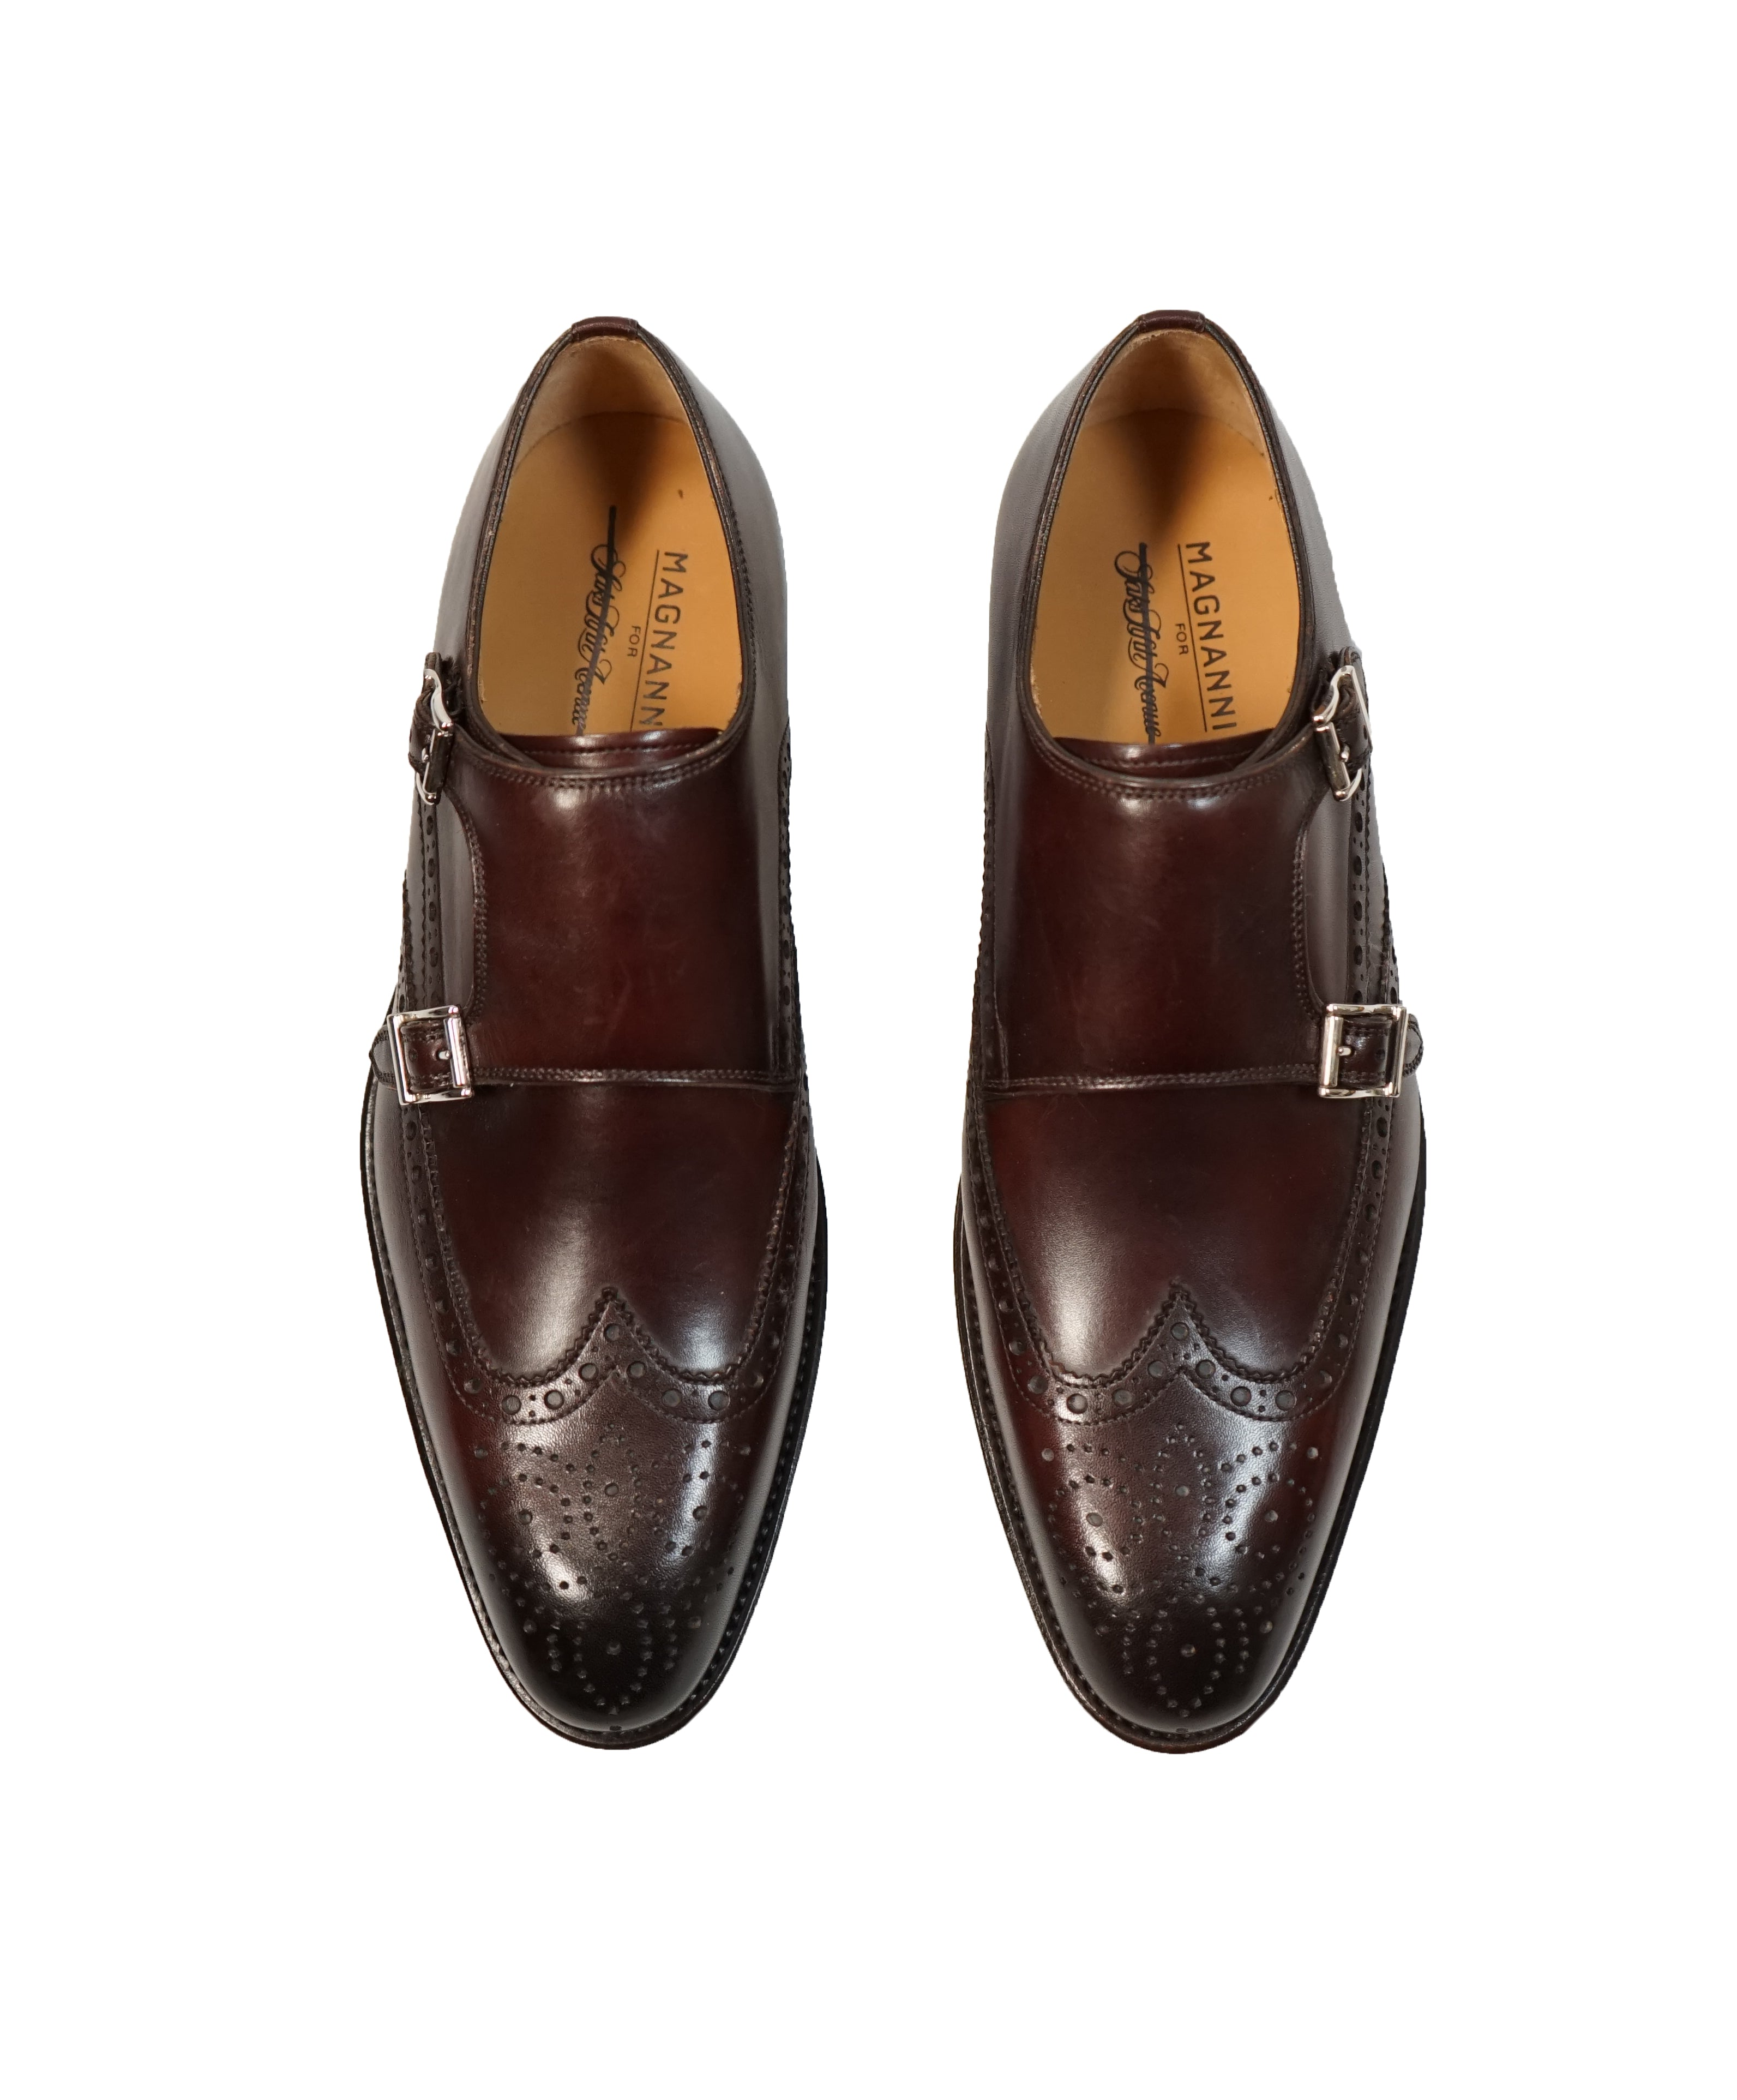 MAGNANNI For SAKS FIFTH AVENUE- Brown Wingtip Brogue Monk Strap Loafers - 7